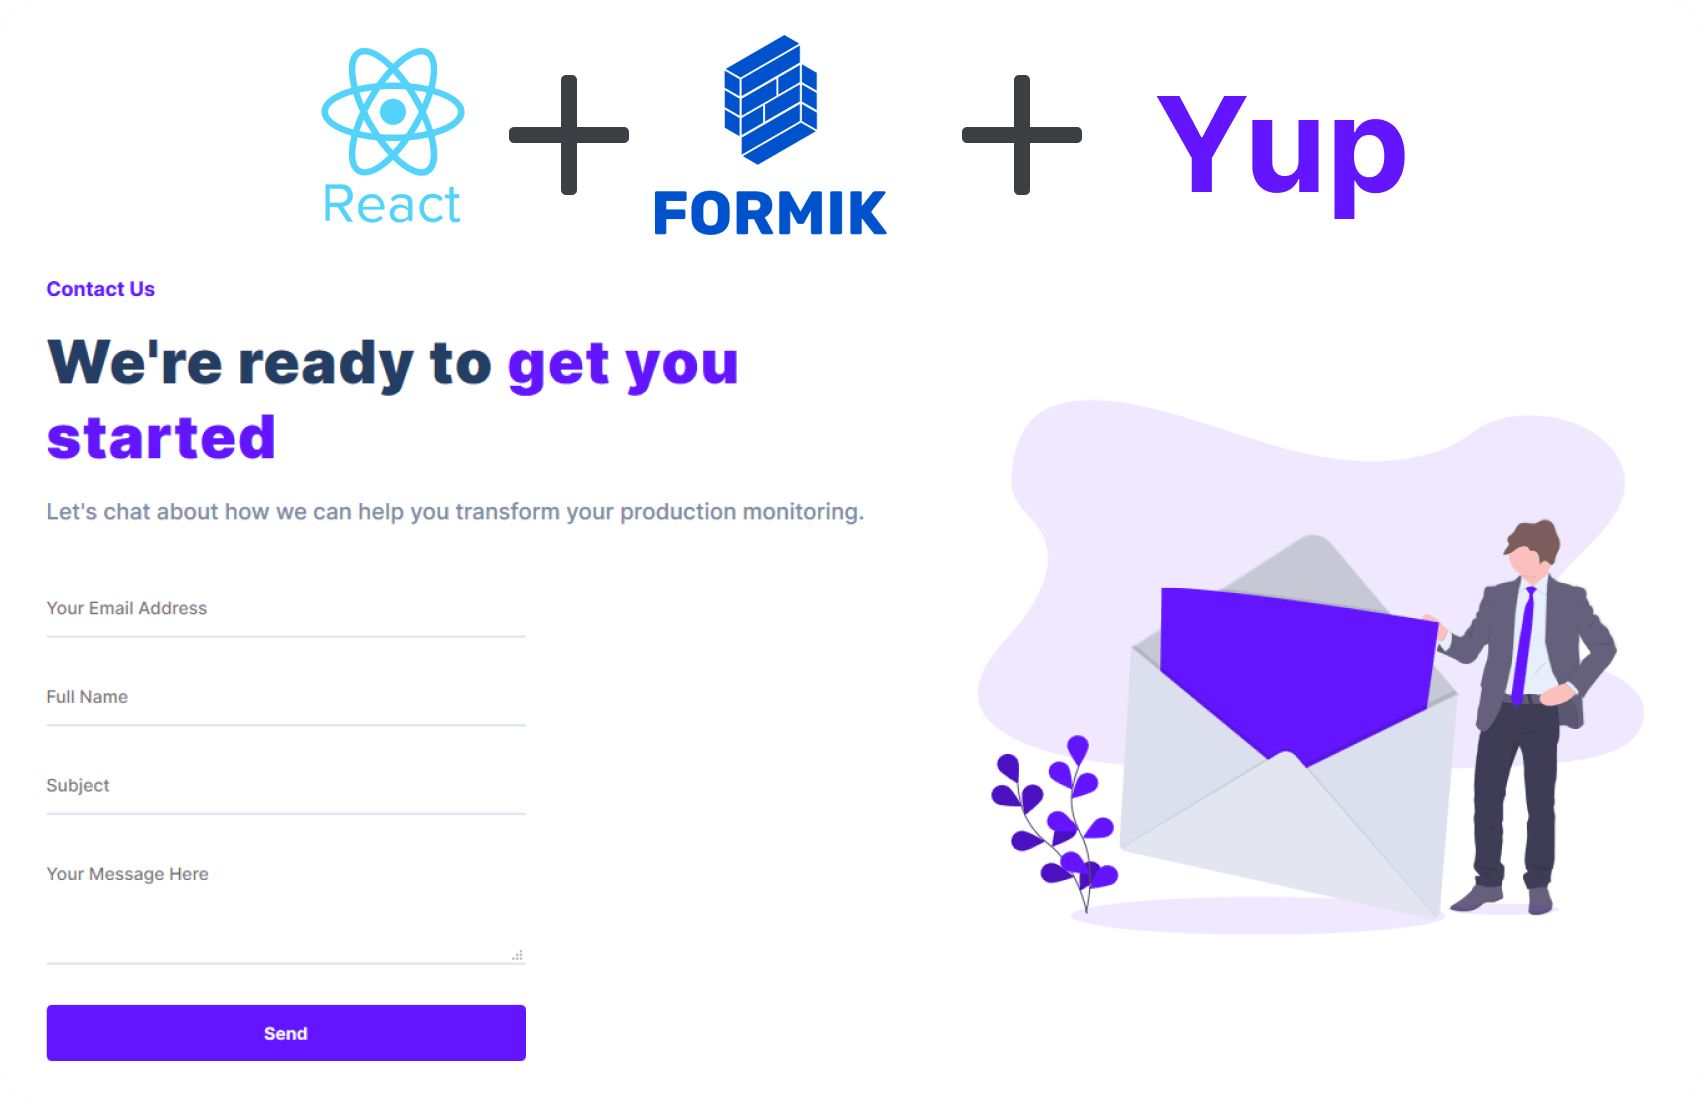 Step-by-step: How to build forms with formik and react